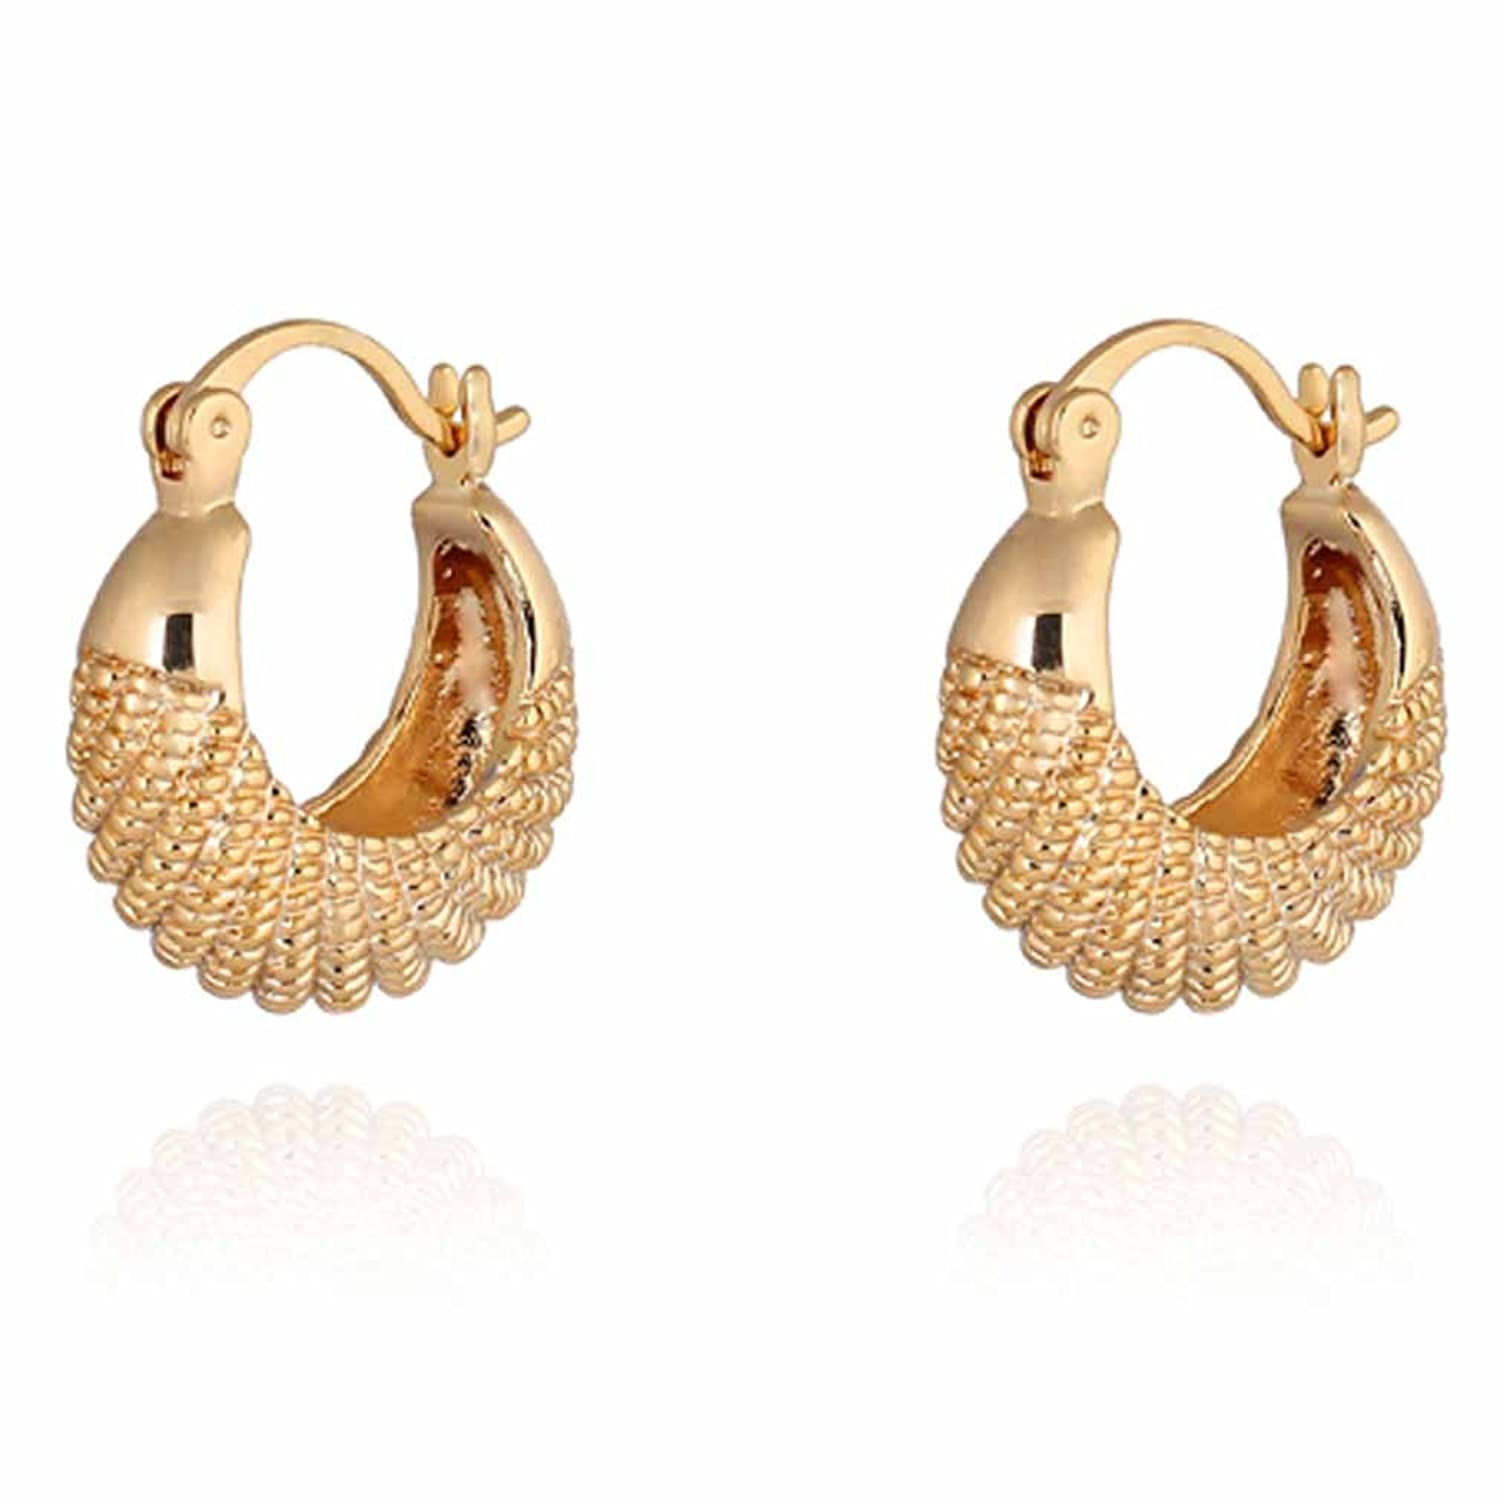 earrings rrjd andino designer picture golden jewellery ring women wedding rings